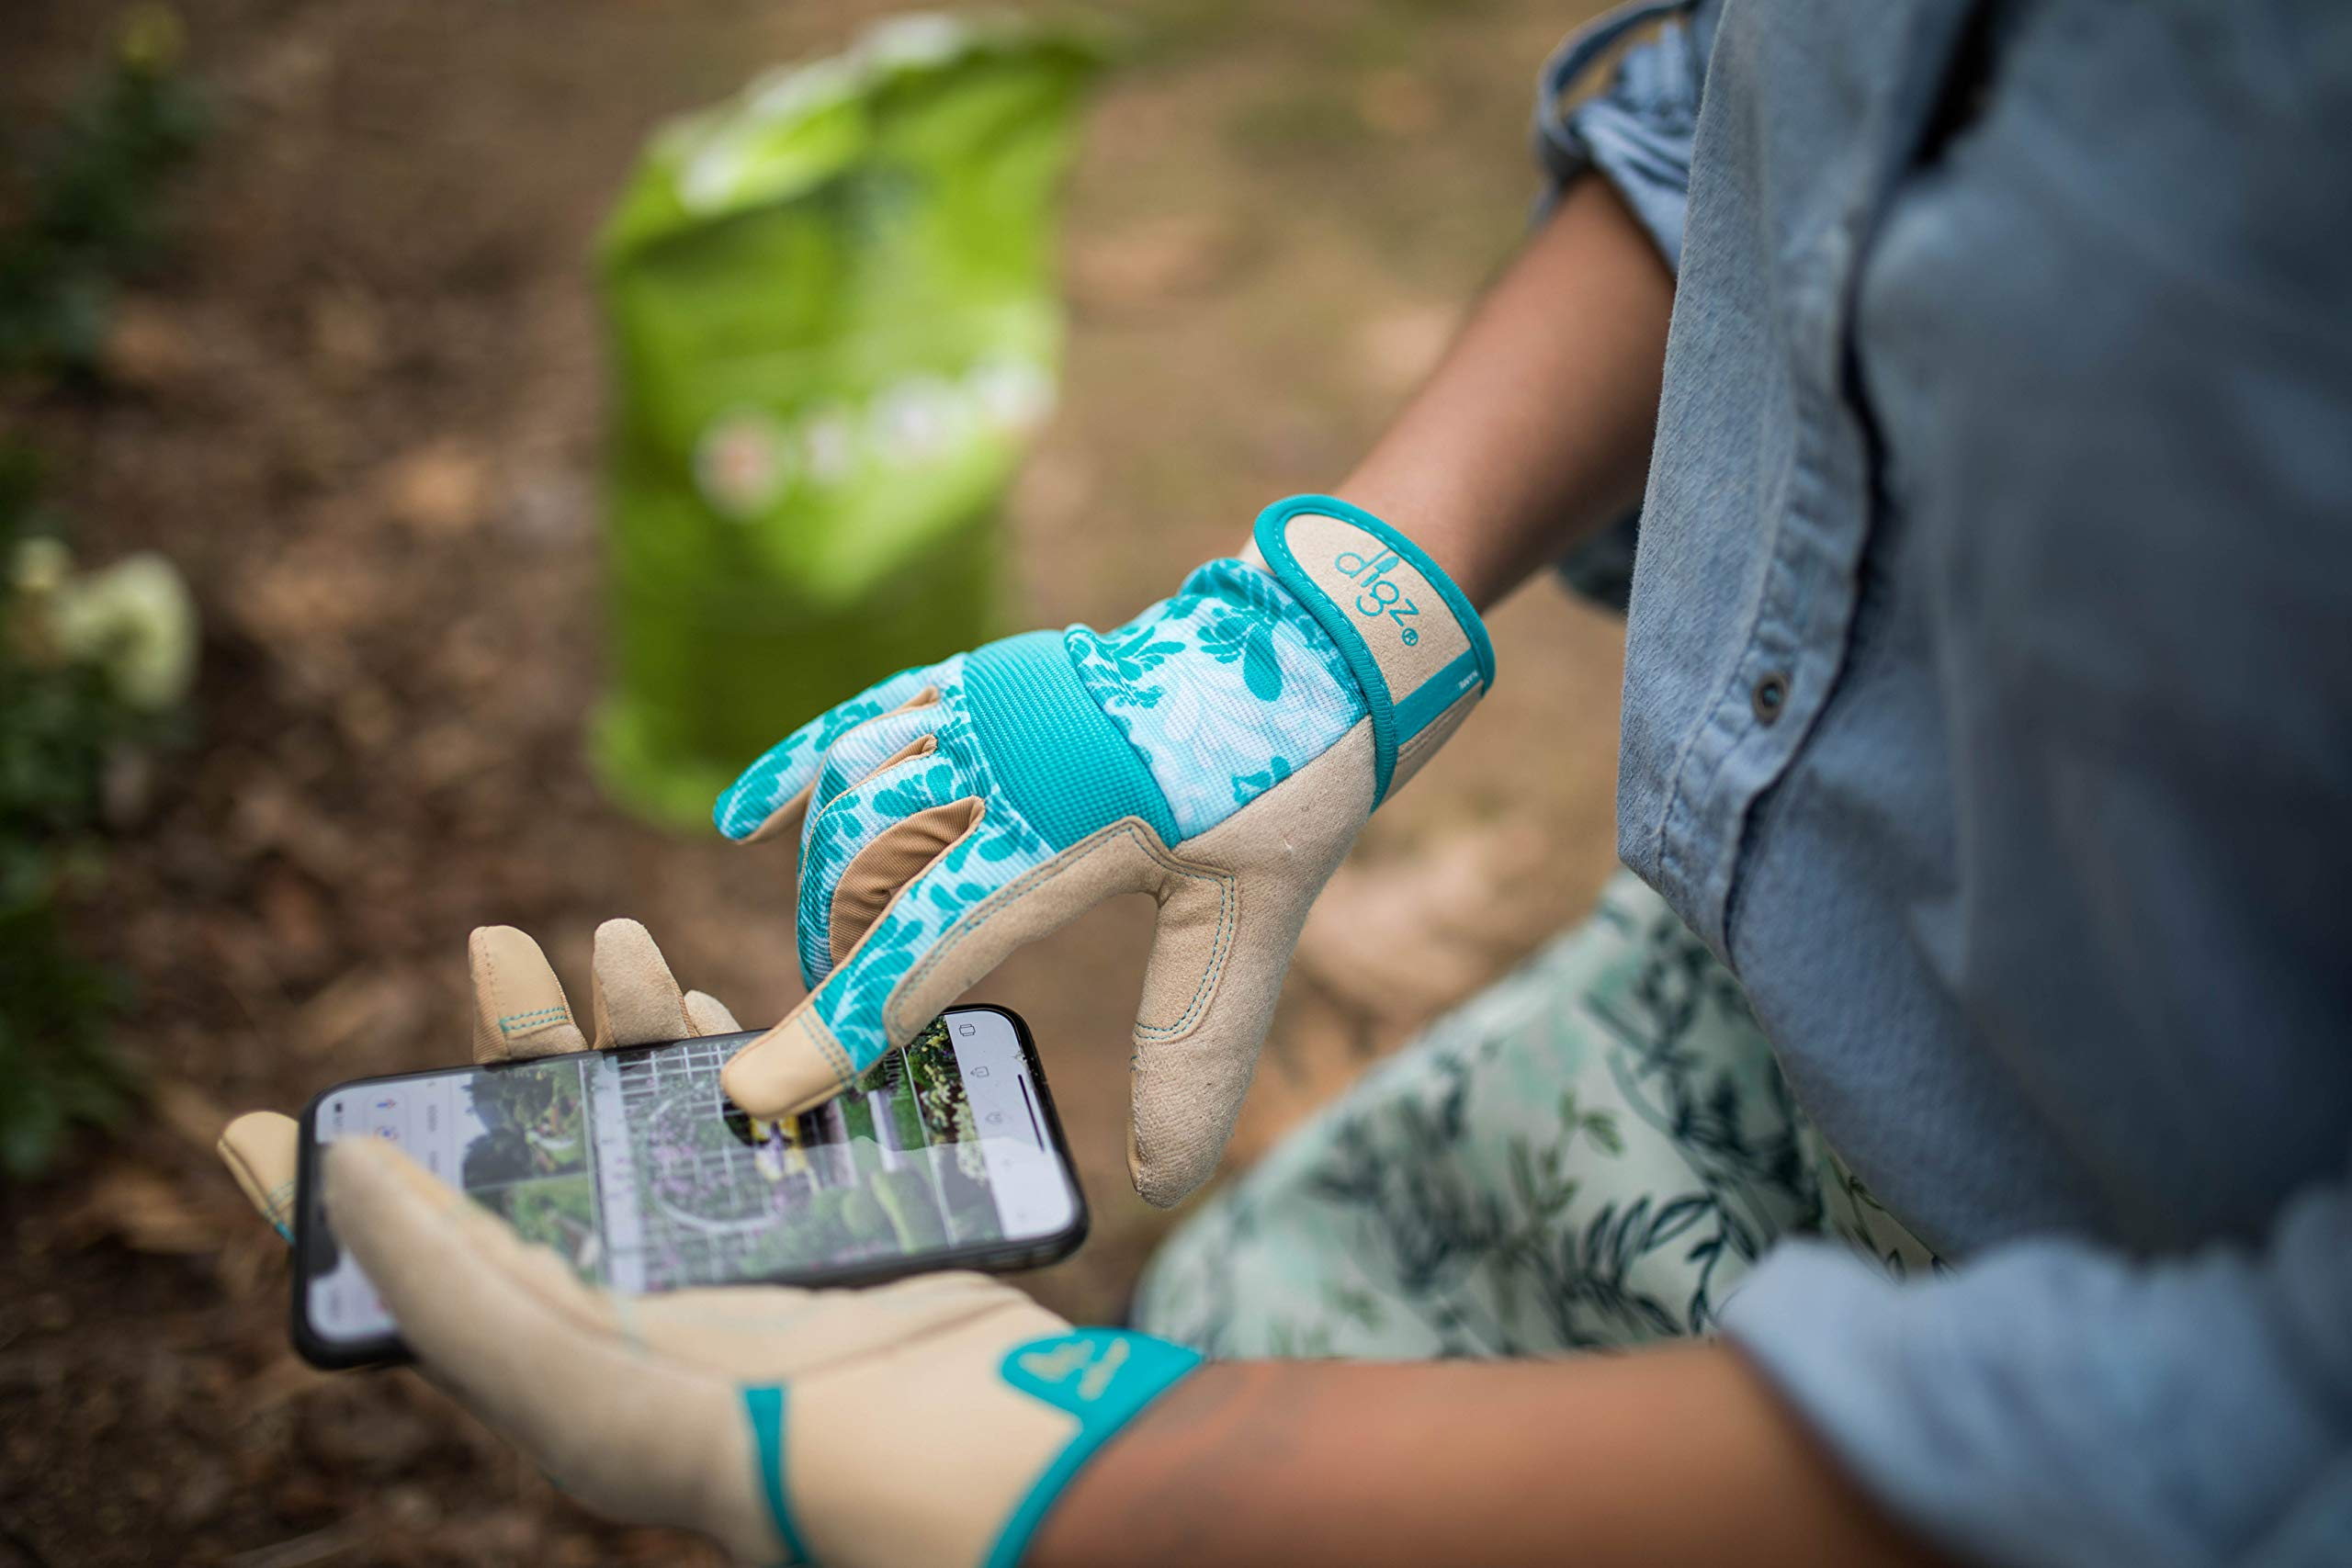 DIGZ Gardener High Performance Women's Gardening Gloves and Work Gloves with Touch Screen Compatible fingertips by DIGZ (Image #3)